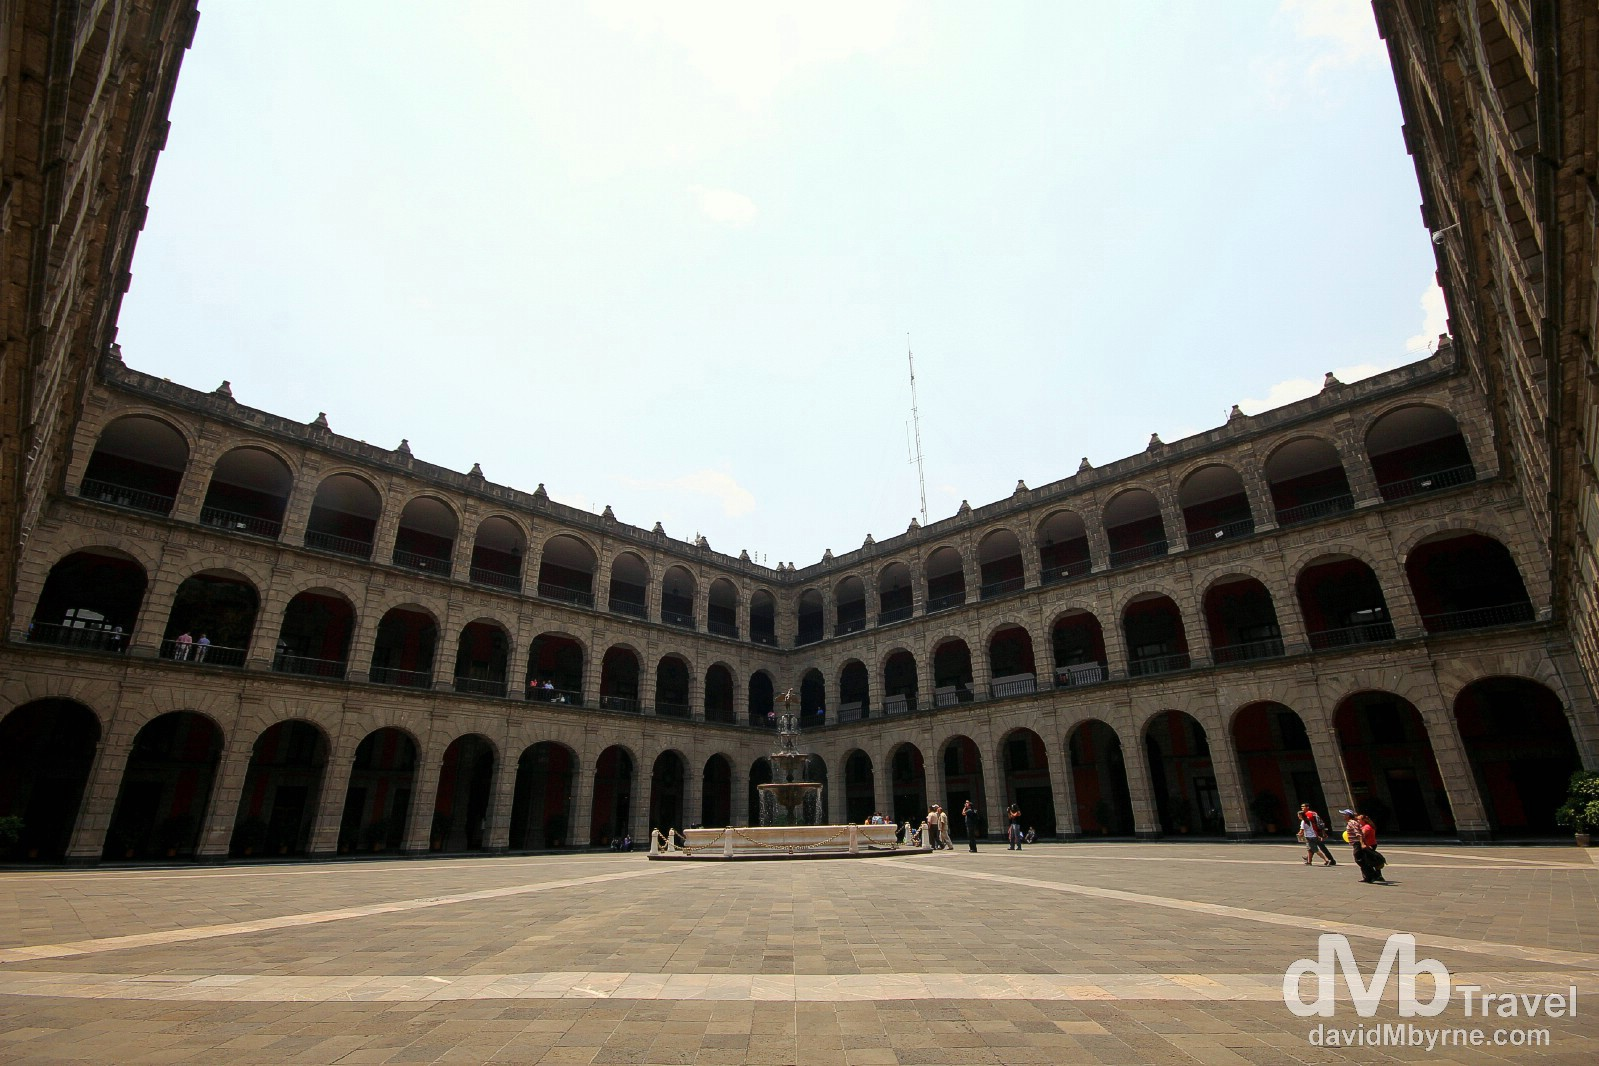 A courtyard in the Palacio Nacional (The National Palace), the home of the offices of the Mexican President. Central Mexico City. April 28th 2013.